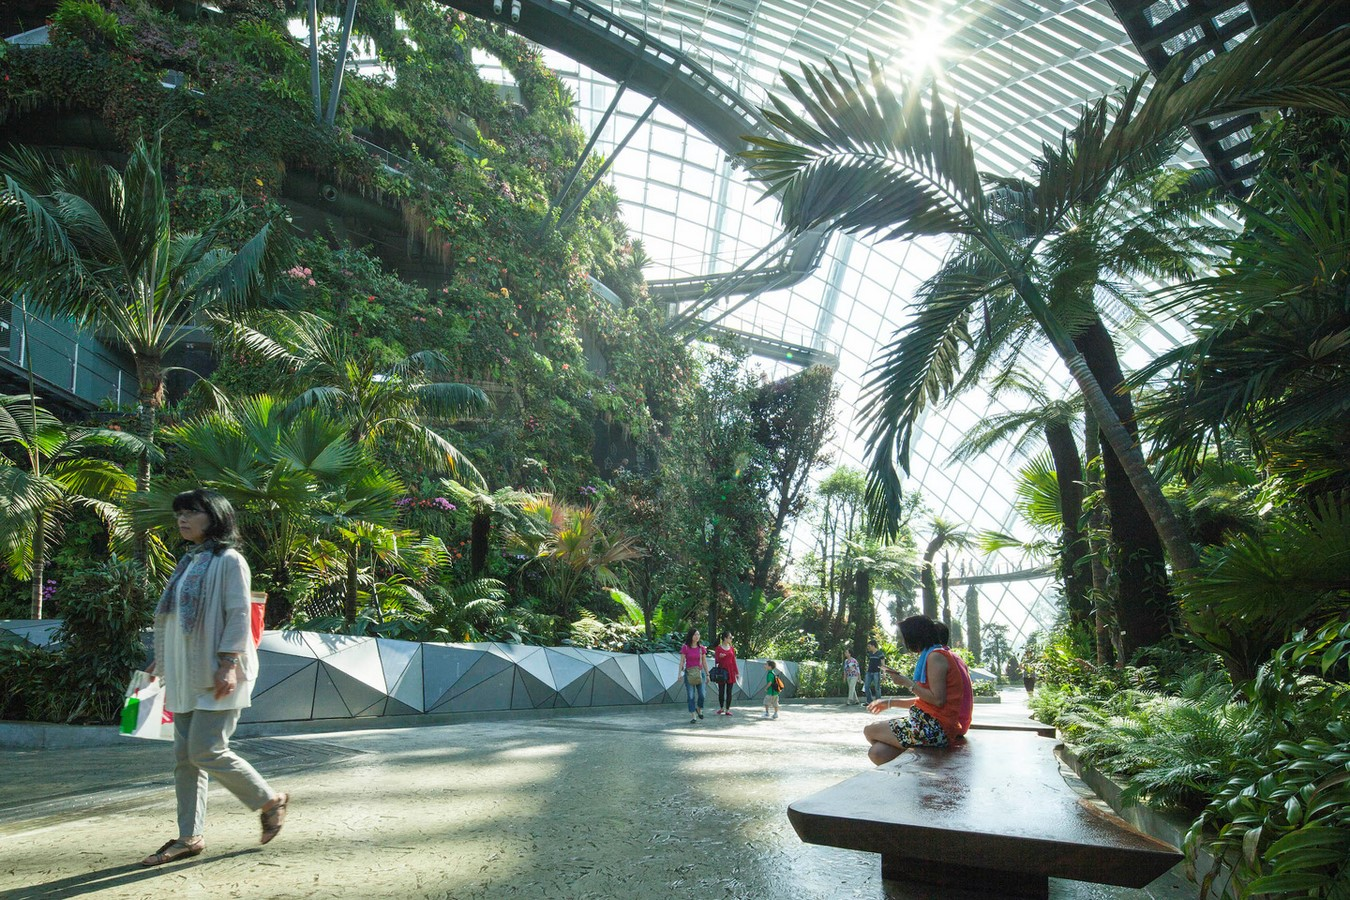 Architecture in Singapore - Gardens by the Bay - Sheet2